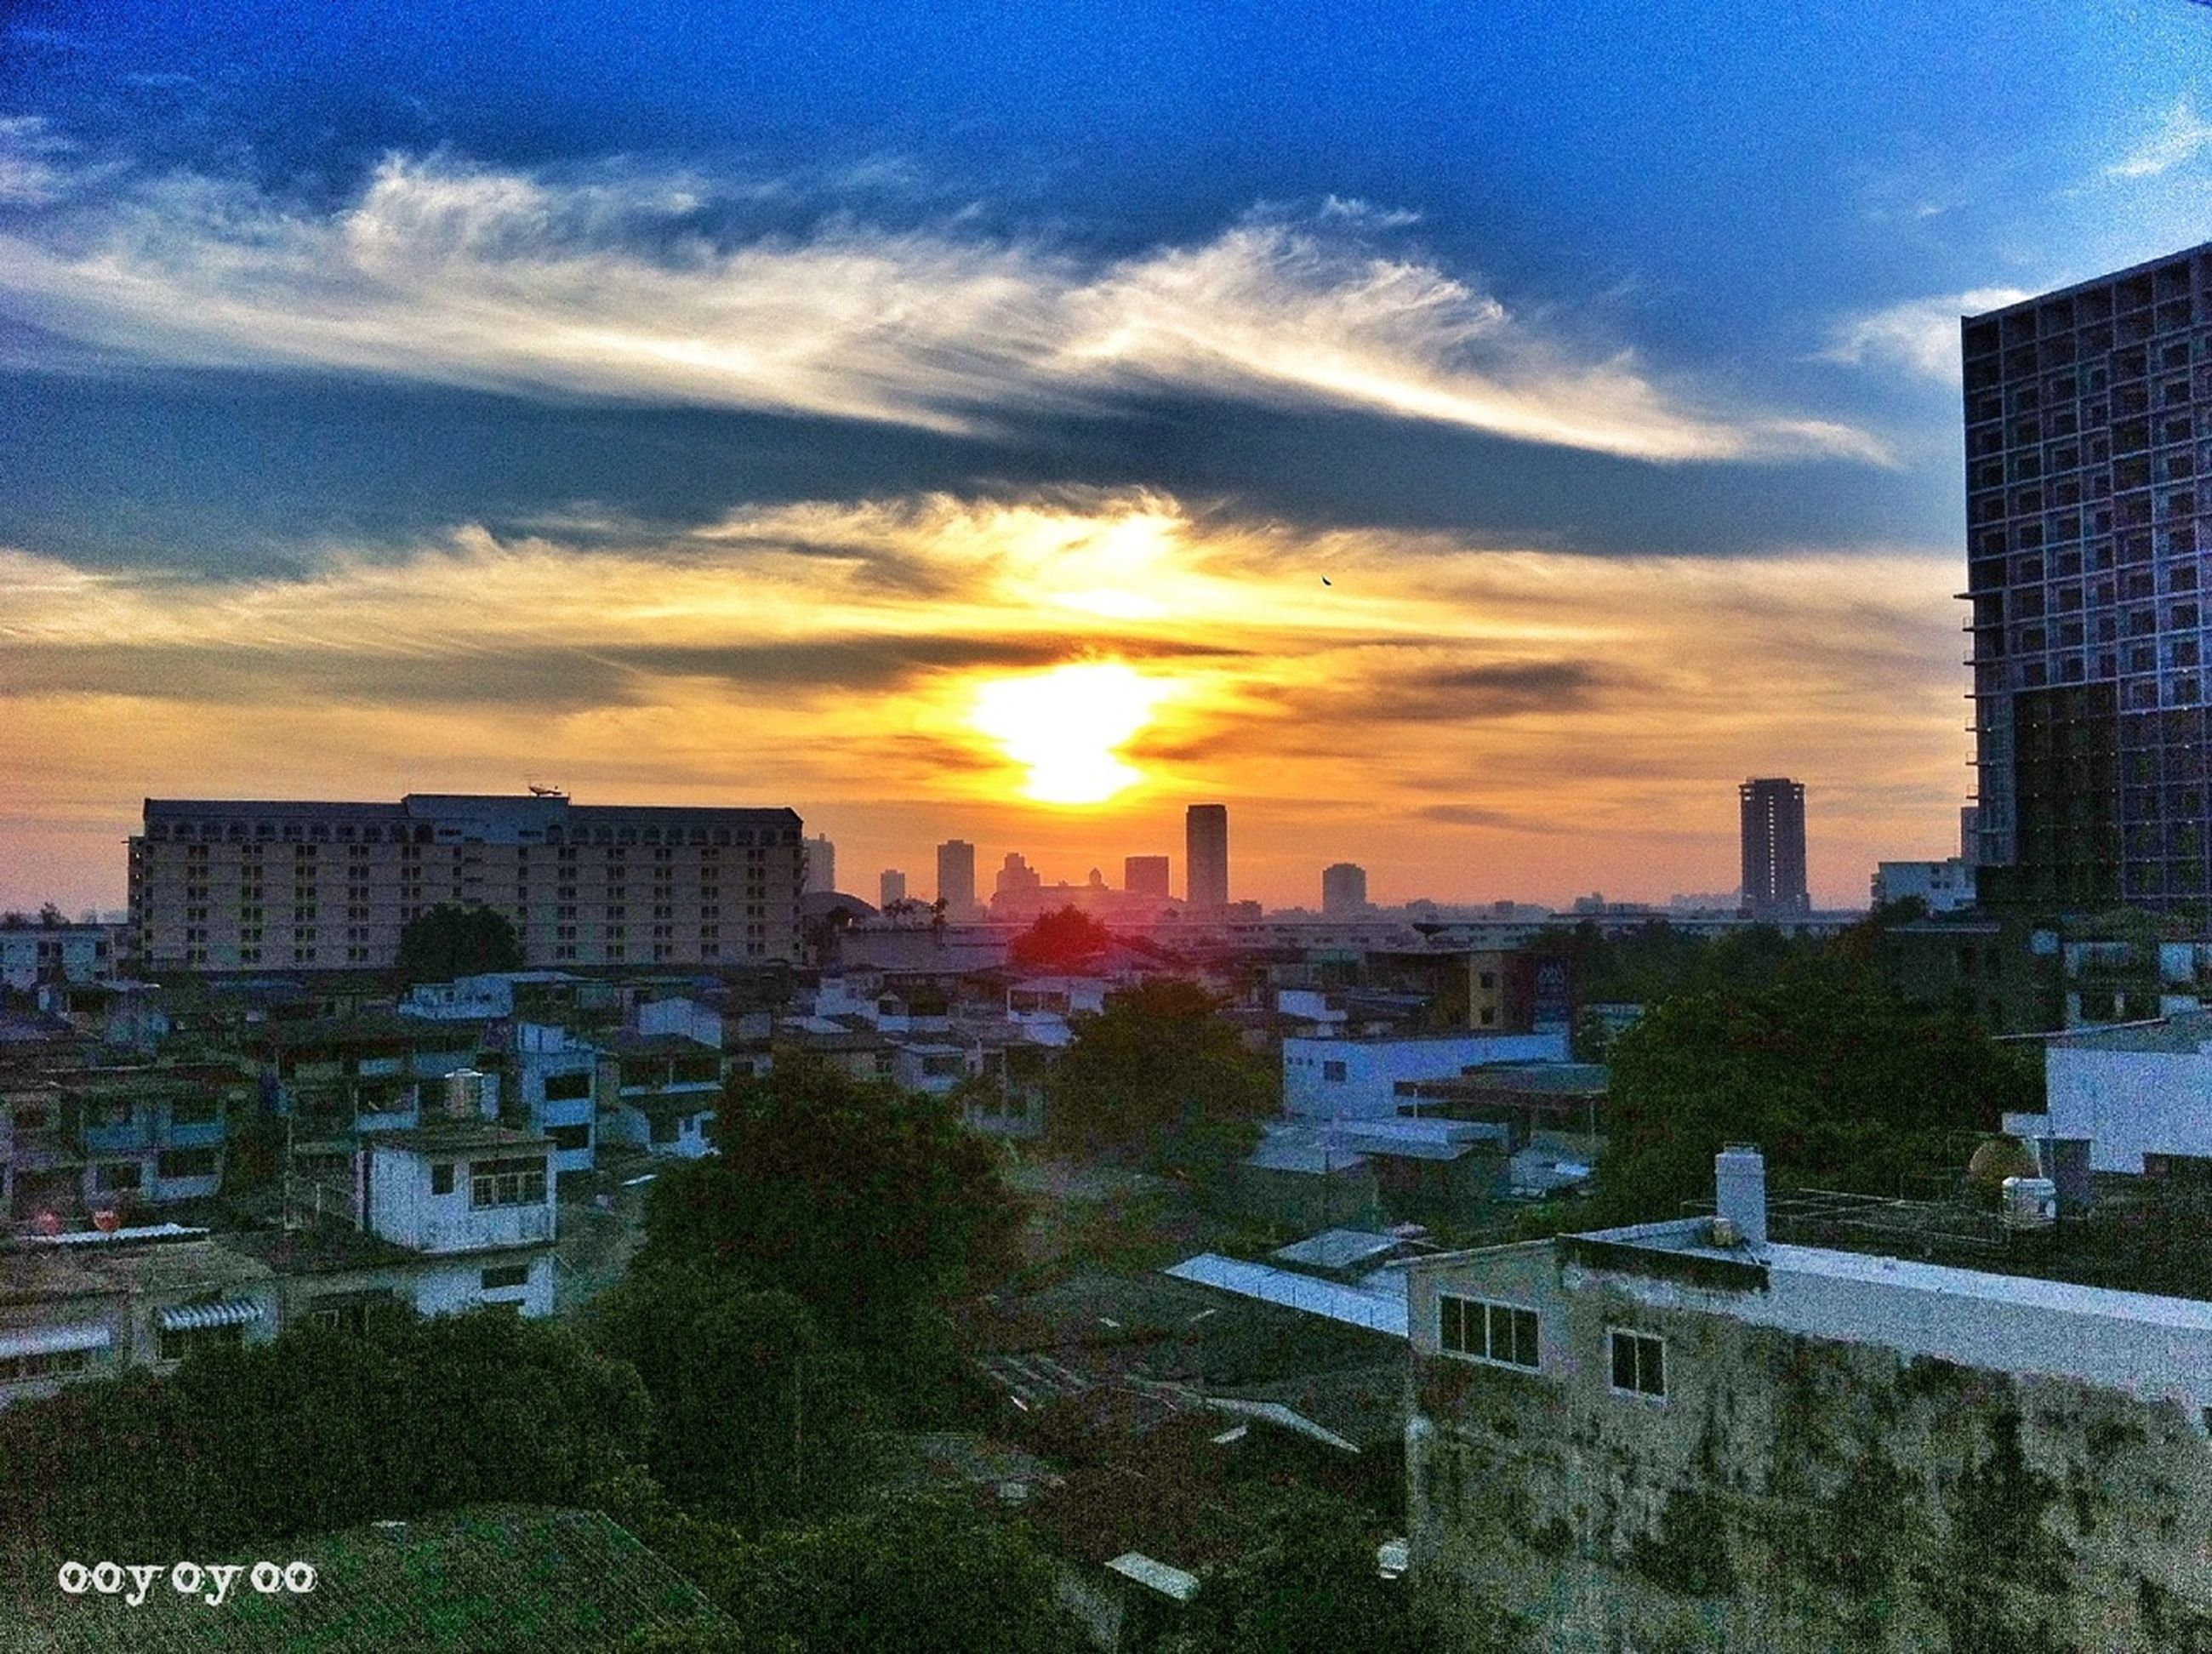 building exterior, architecture, sunset, built structure, city, sky, cityscape, cloud - sky, skyscraper, residential building, sunlight, sun, residential district, residential structure, urban skyline, tower, orange color, building, city life, tree